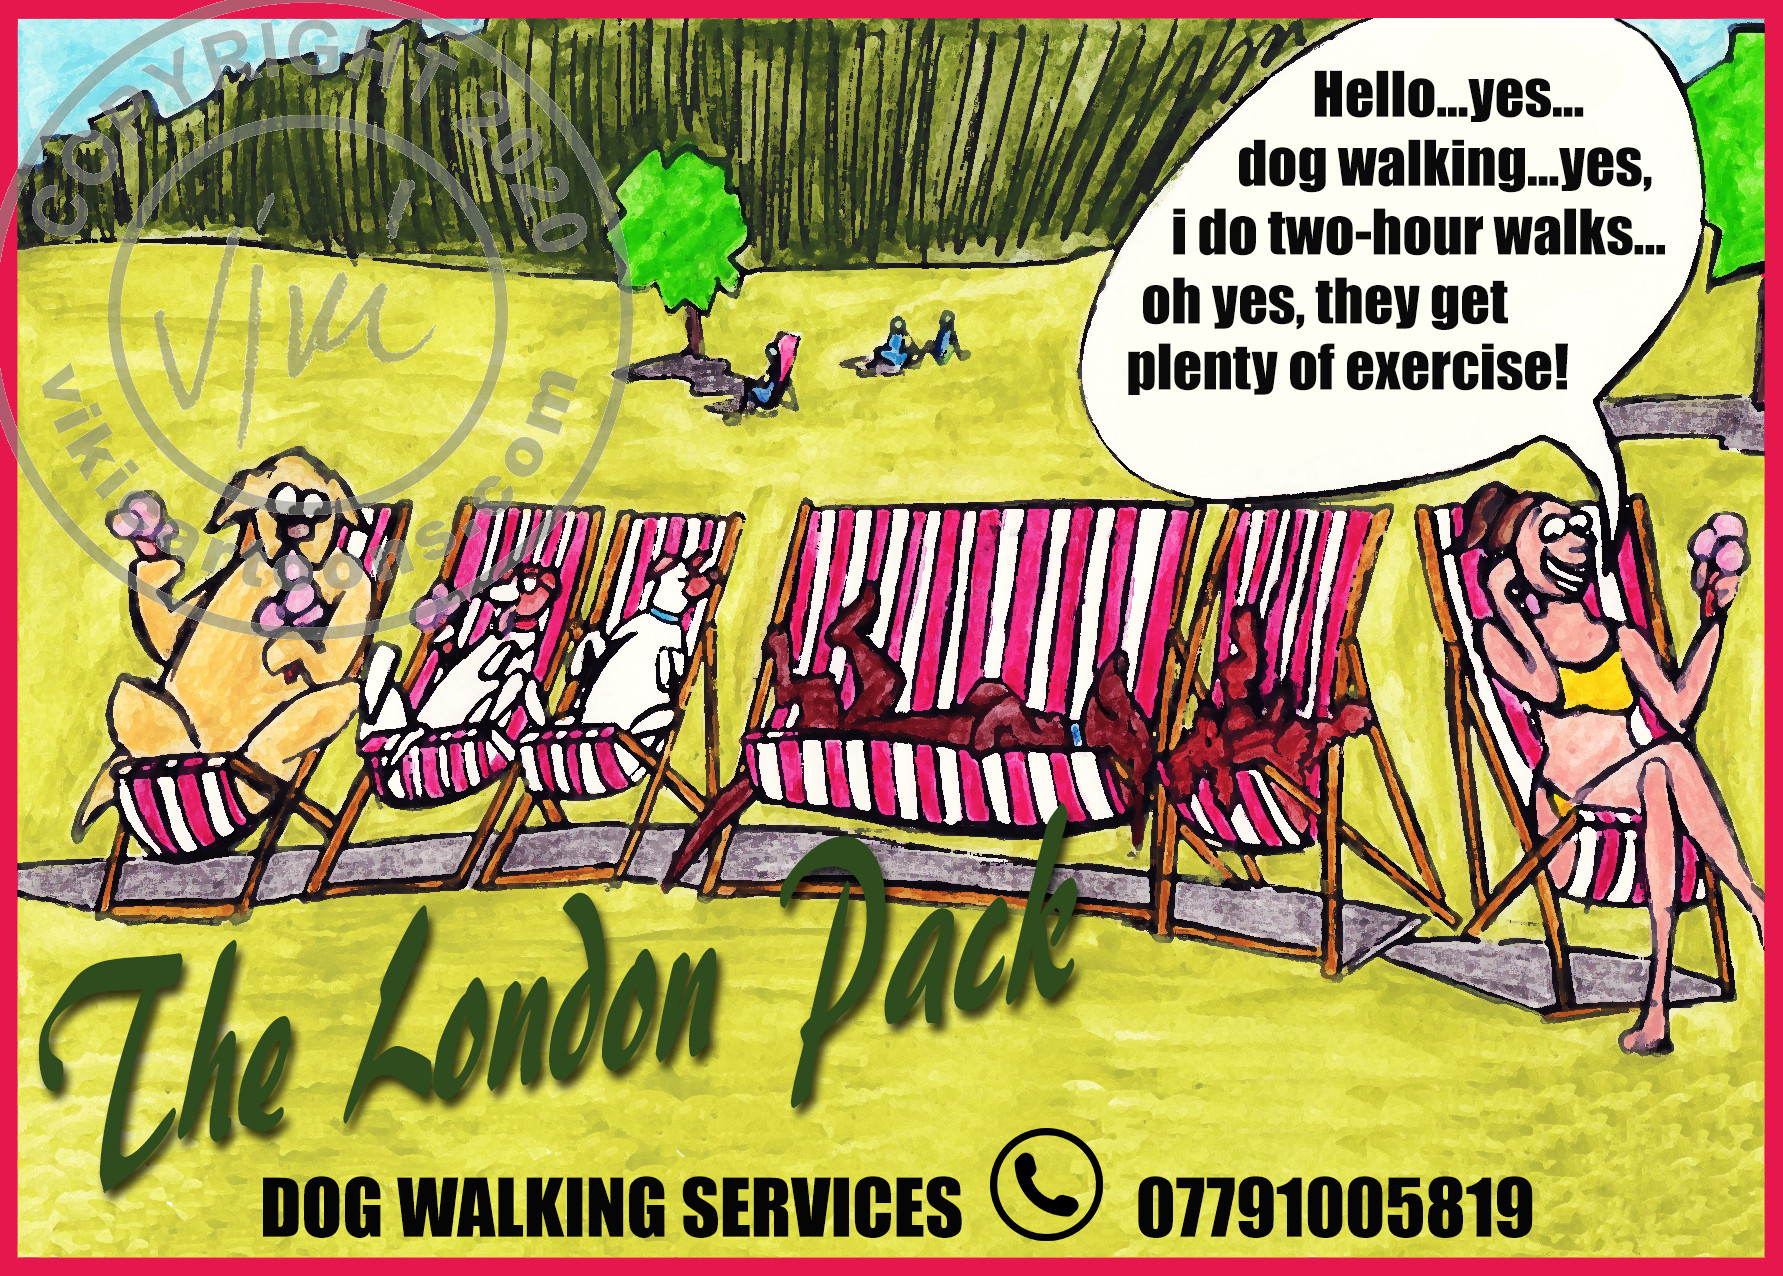 This is probably the first advert i ever made. It was for my own dogwalking business in London that i started up in 2002 until 2009 when my son was born. That was a very successful business and i loved doing it.